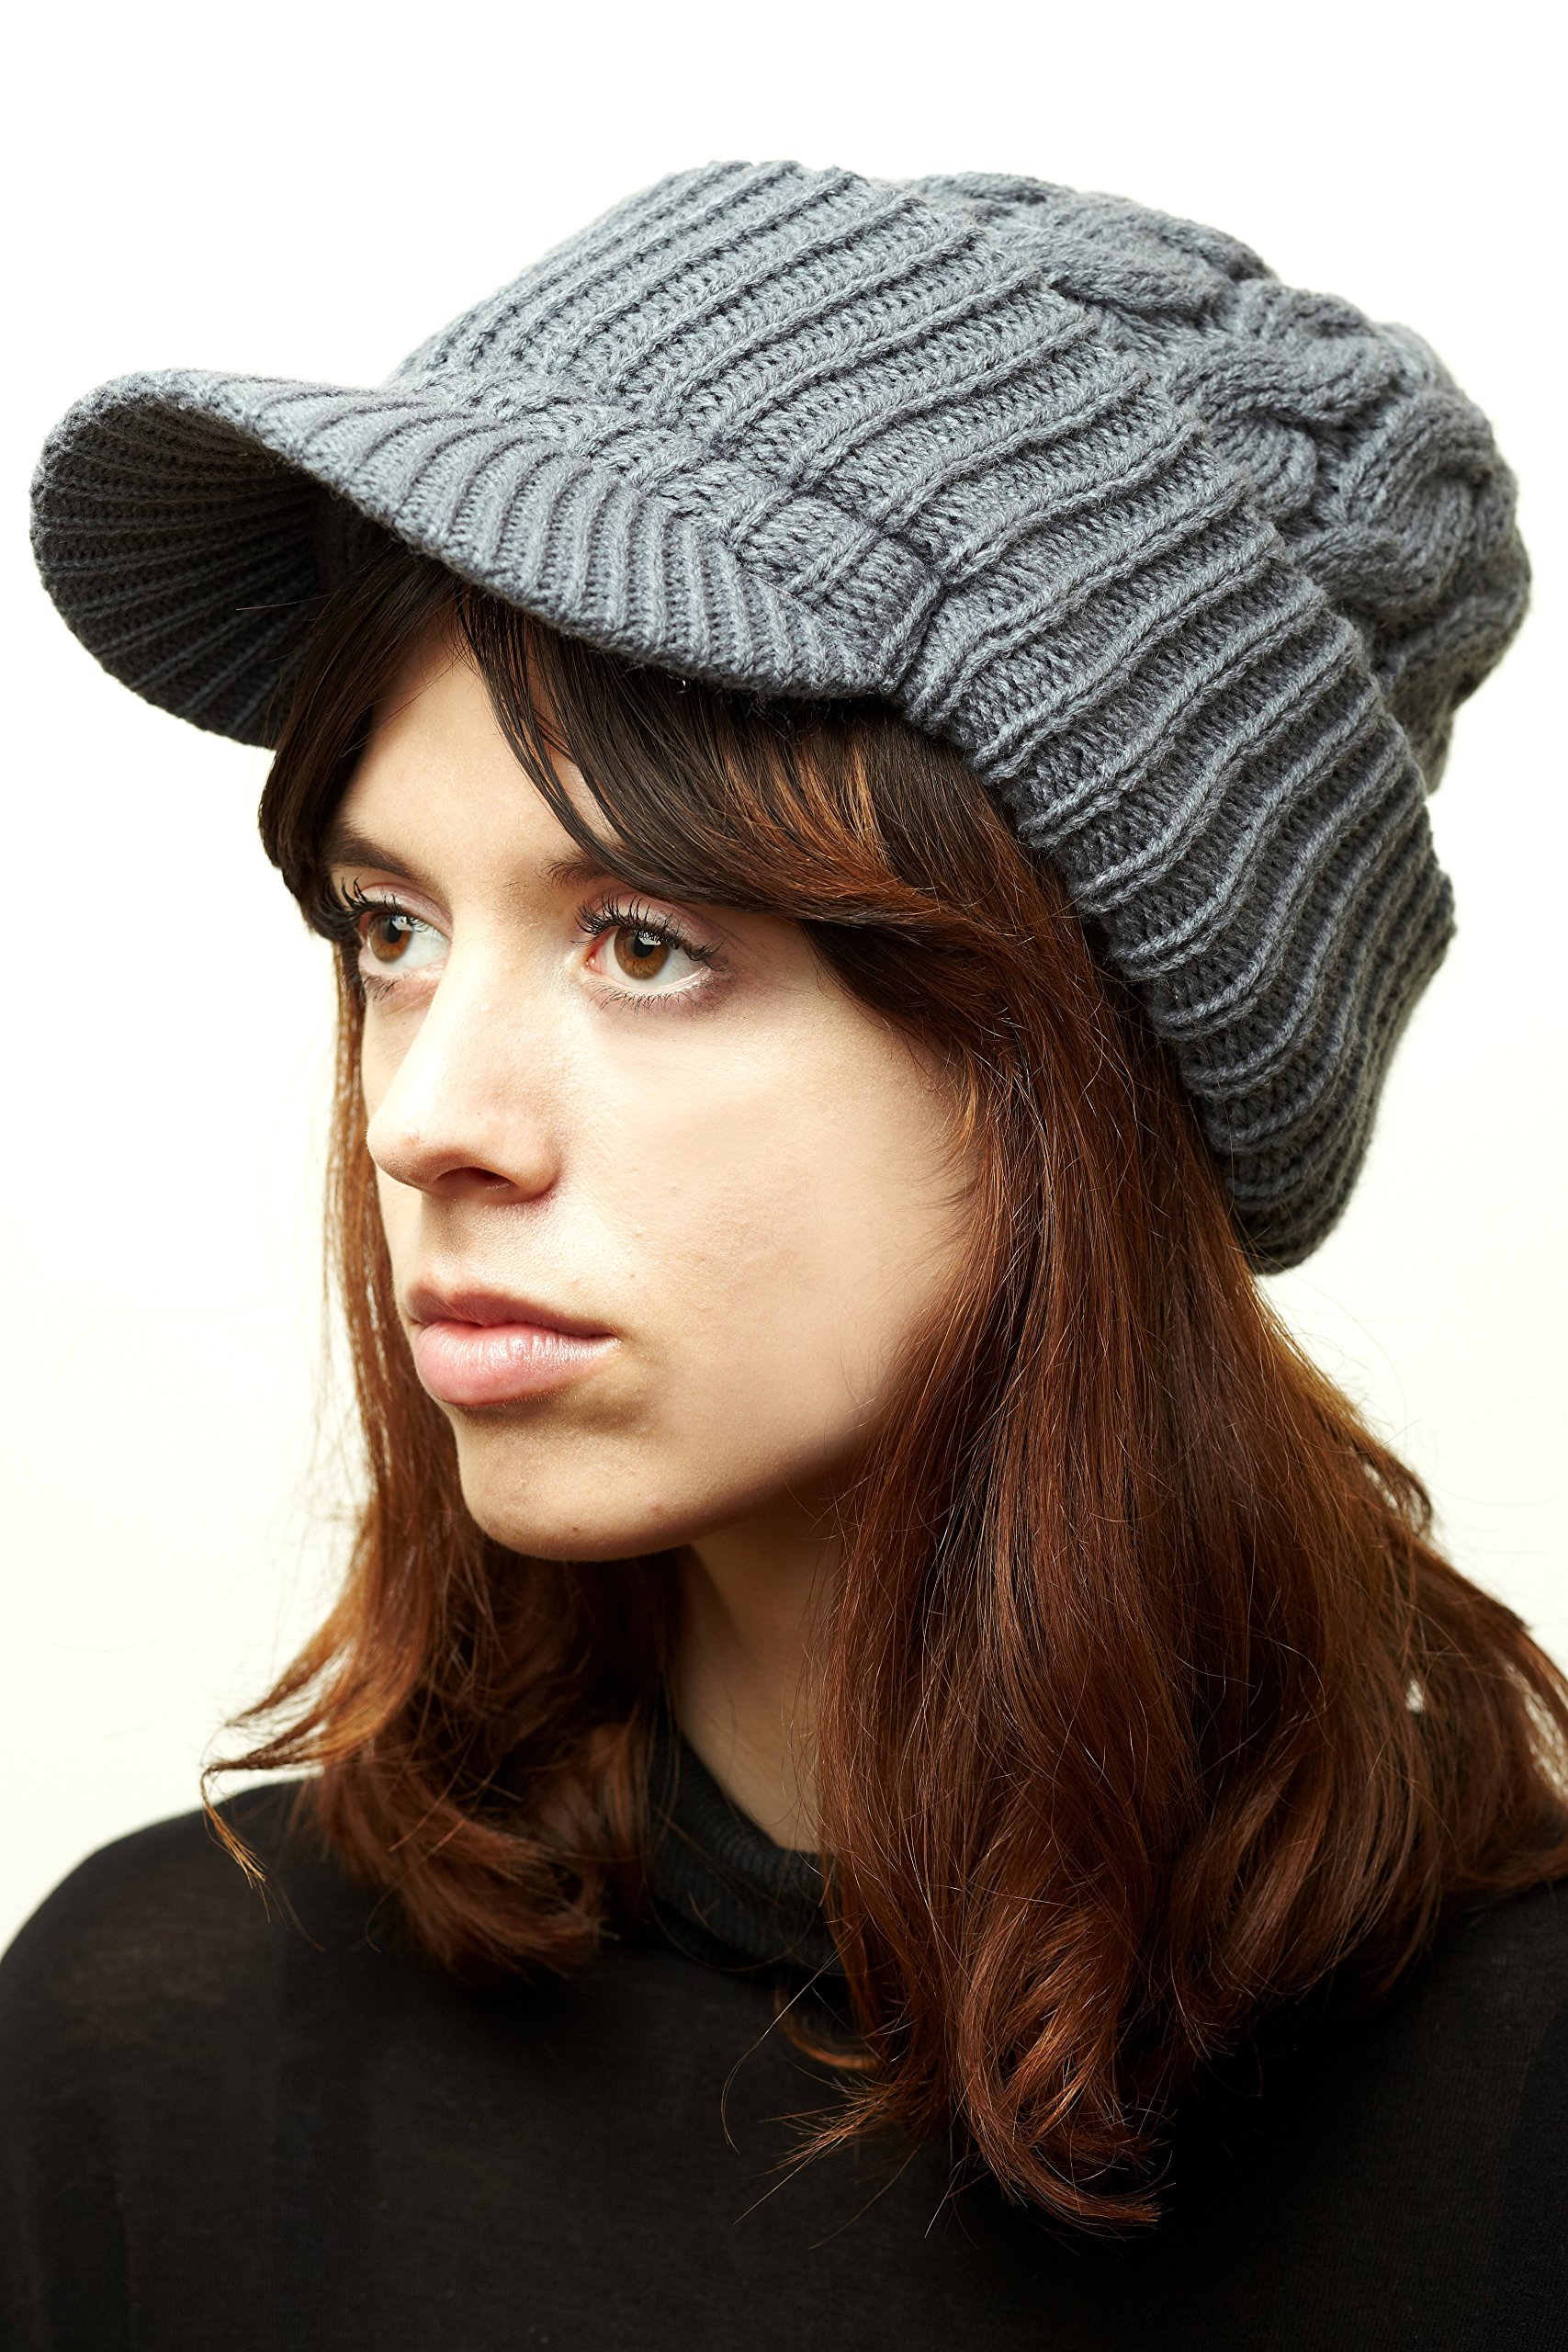 Newsboy Jeep knitted hat with short cute trendy visor winter warm for women (One Size Fits Most, LightGray_Heavyweight)